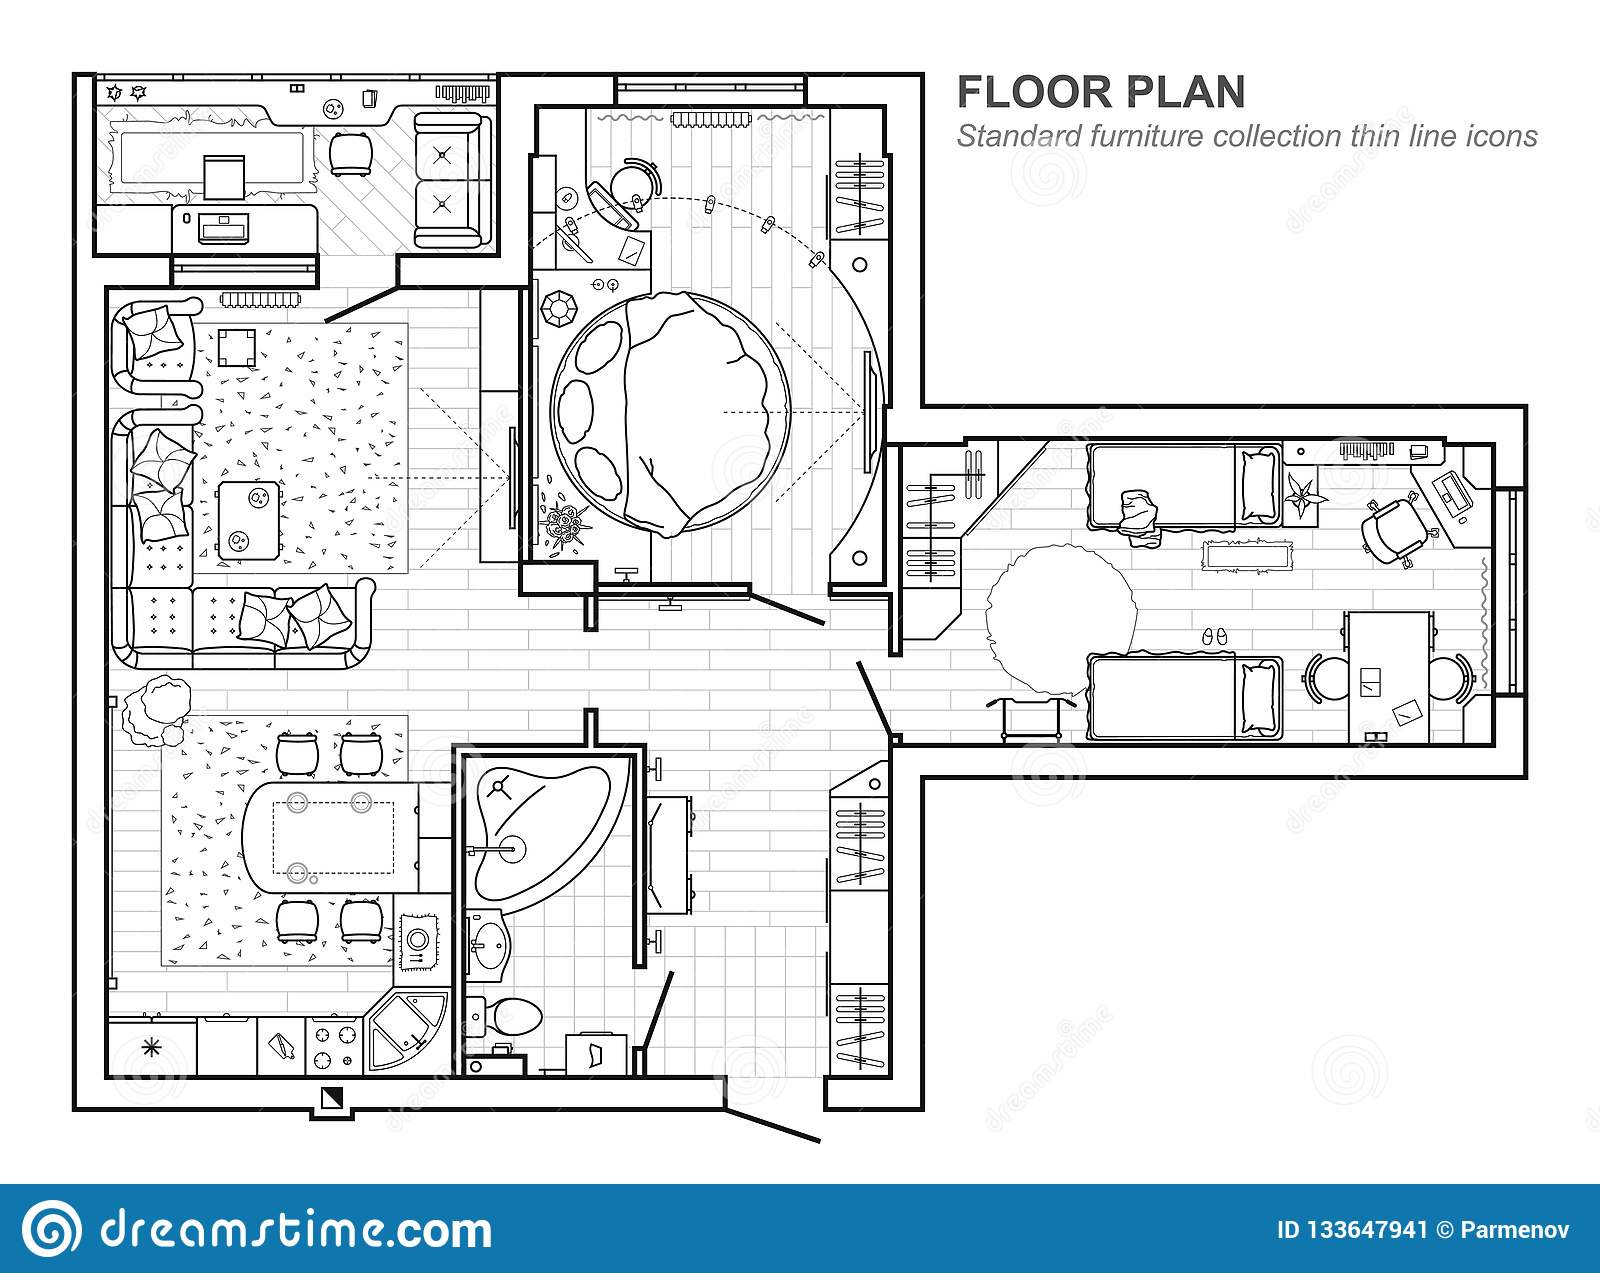 Floor Plan With Furniture In Top View Architectural Set Of Furniture Thin Line Icons Detailed Project Of The Modern Apartment Stock Vector Illustration Of Detailed Architect 133647941